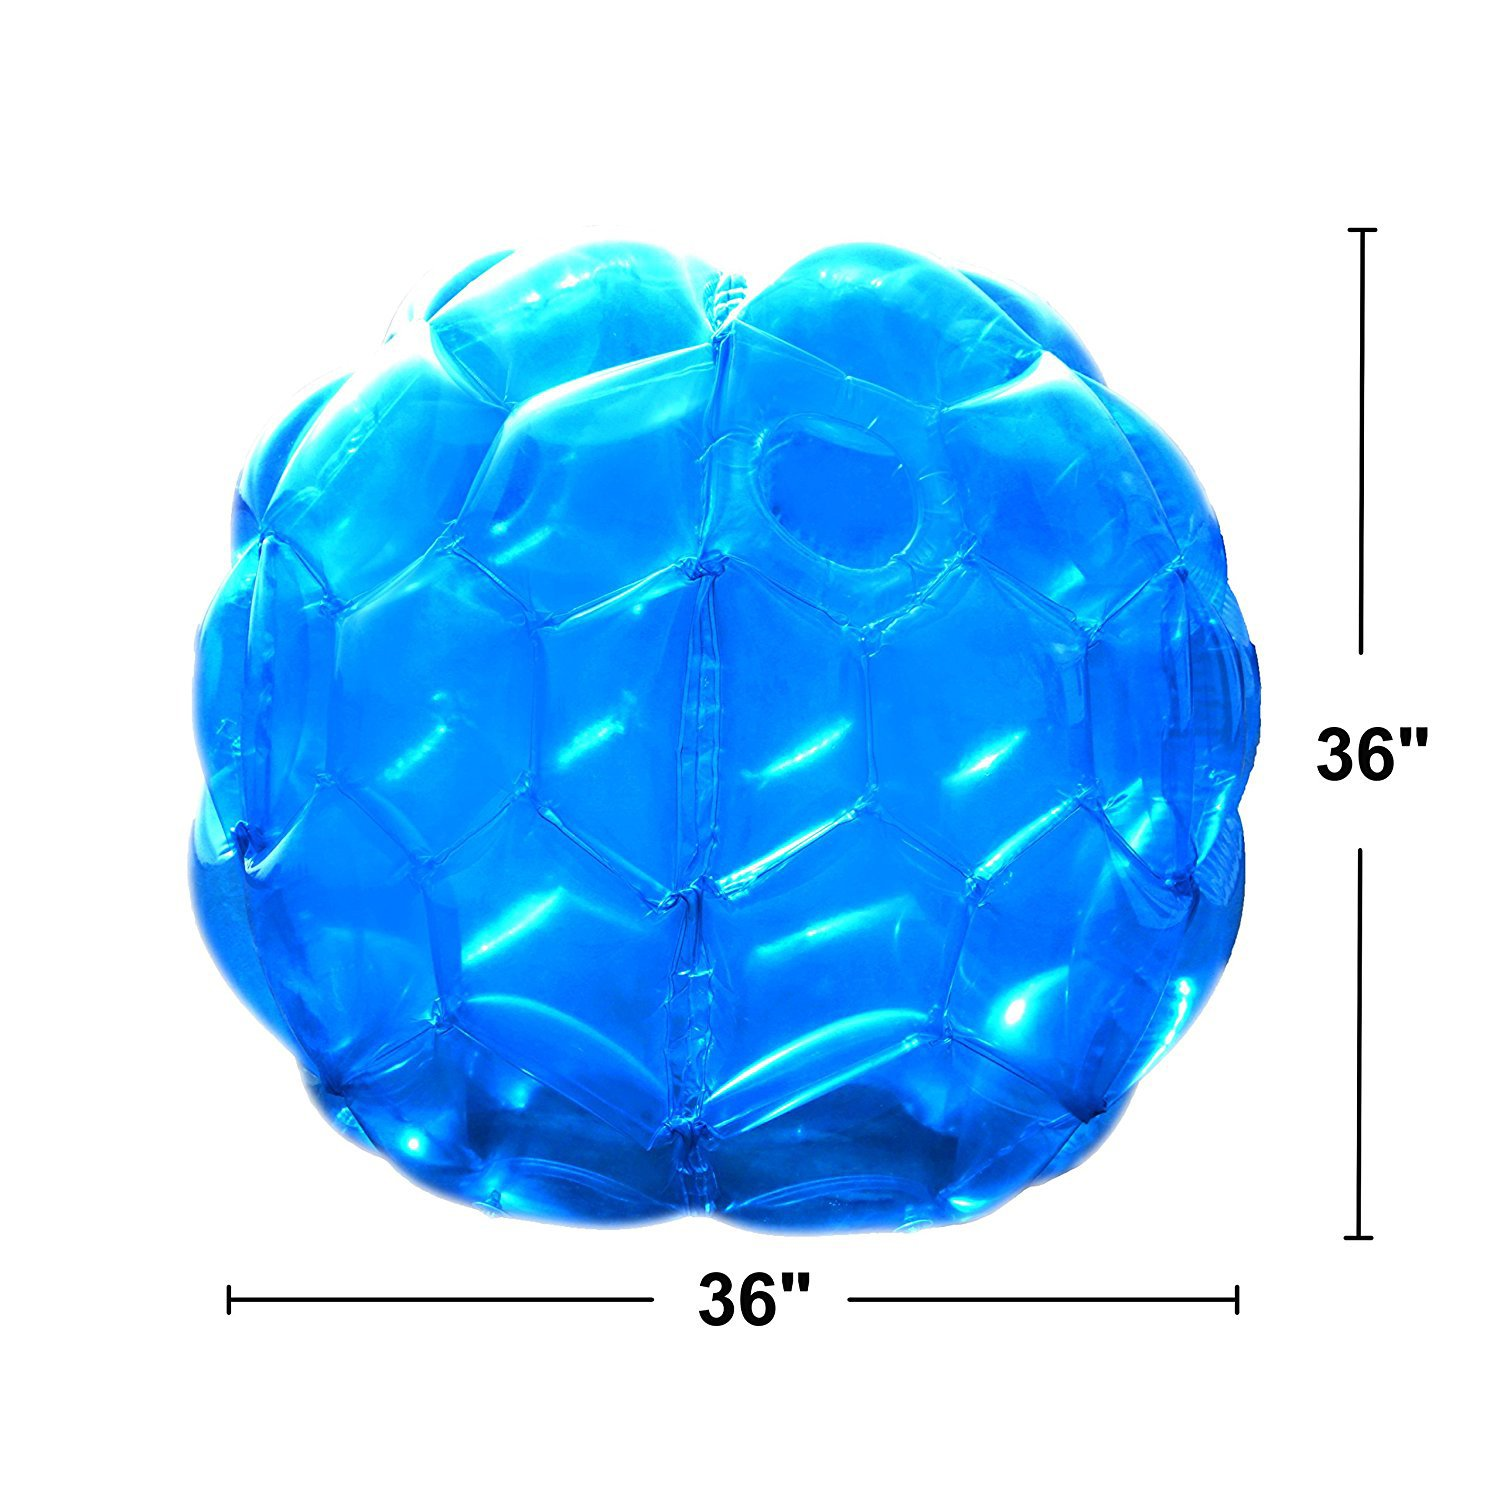 Inflatable 36'' Wearable Buddy Bumper Zorb Balls Heavy Duty Durable PVC Viny Bubble Soccer Outdoor Game (2-Pack,Blue&Red)) ... by Holleyweb (Image #9)